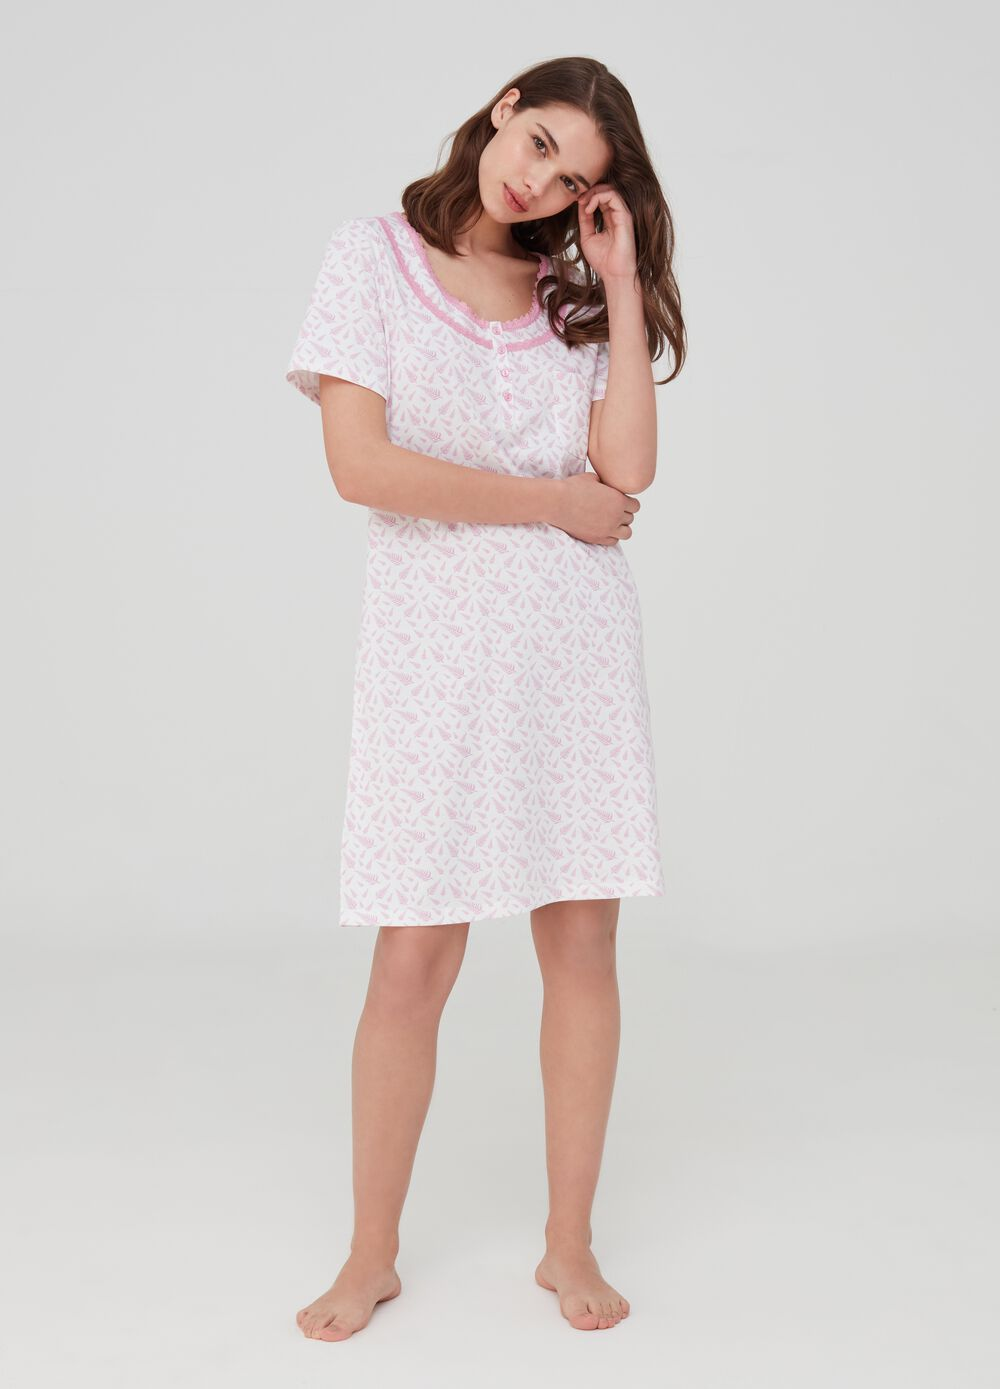 Organic cotton nightshirt with lace